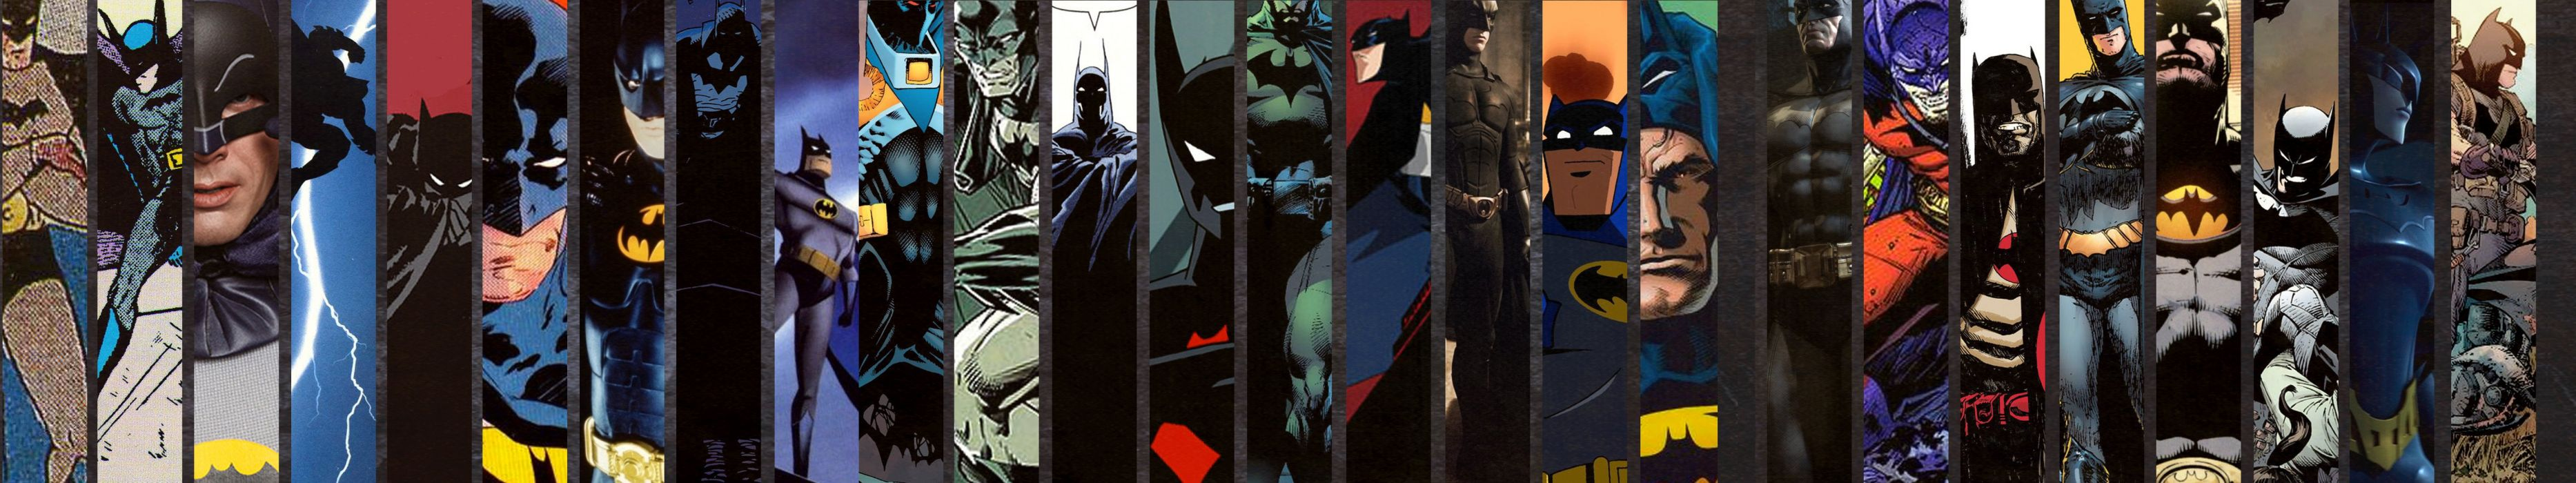 triple screen - multi monitor - multiple - batman wallpaper